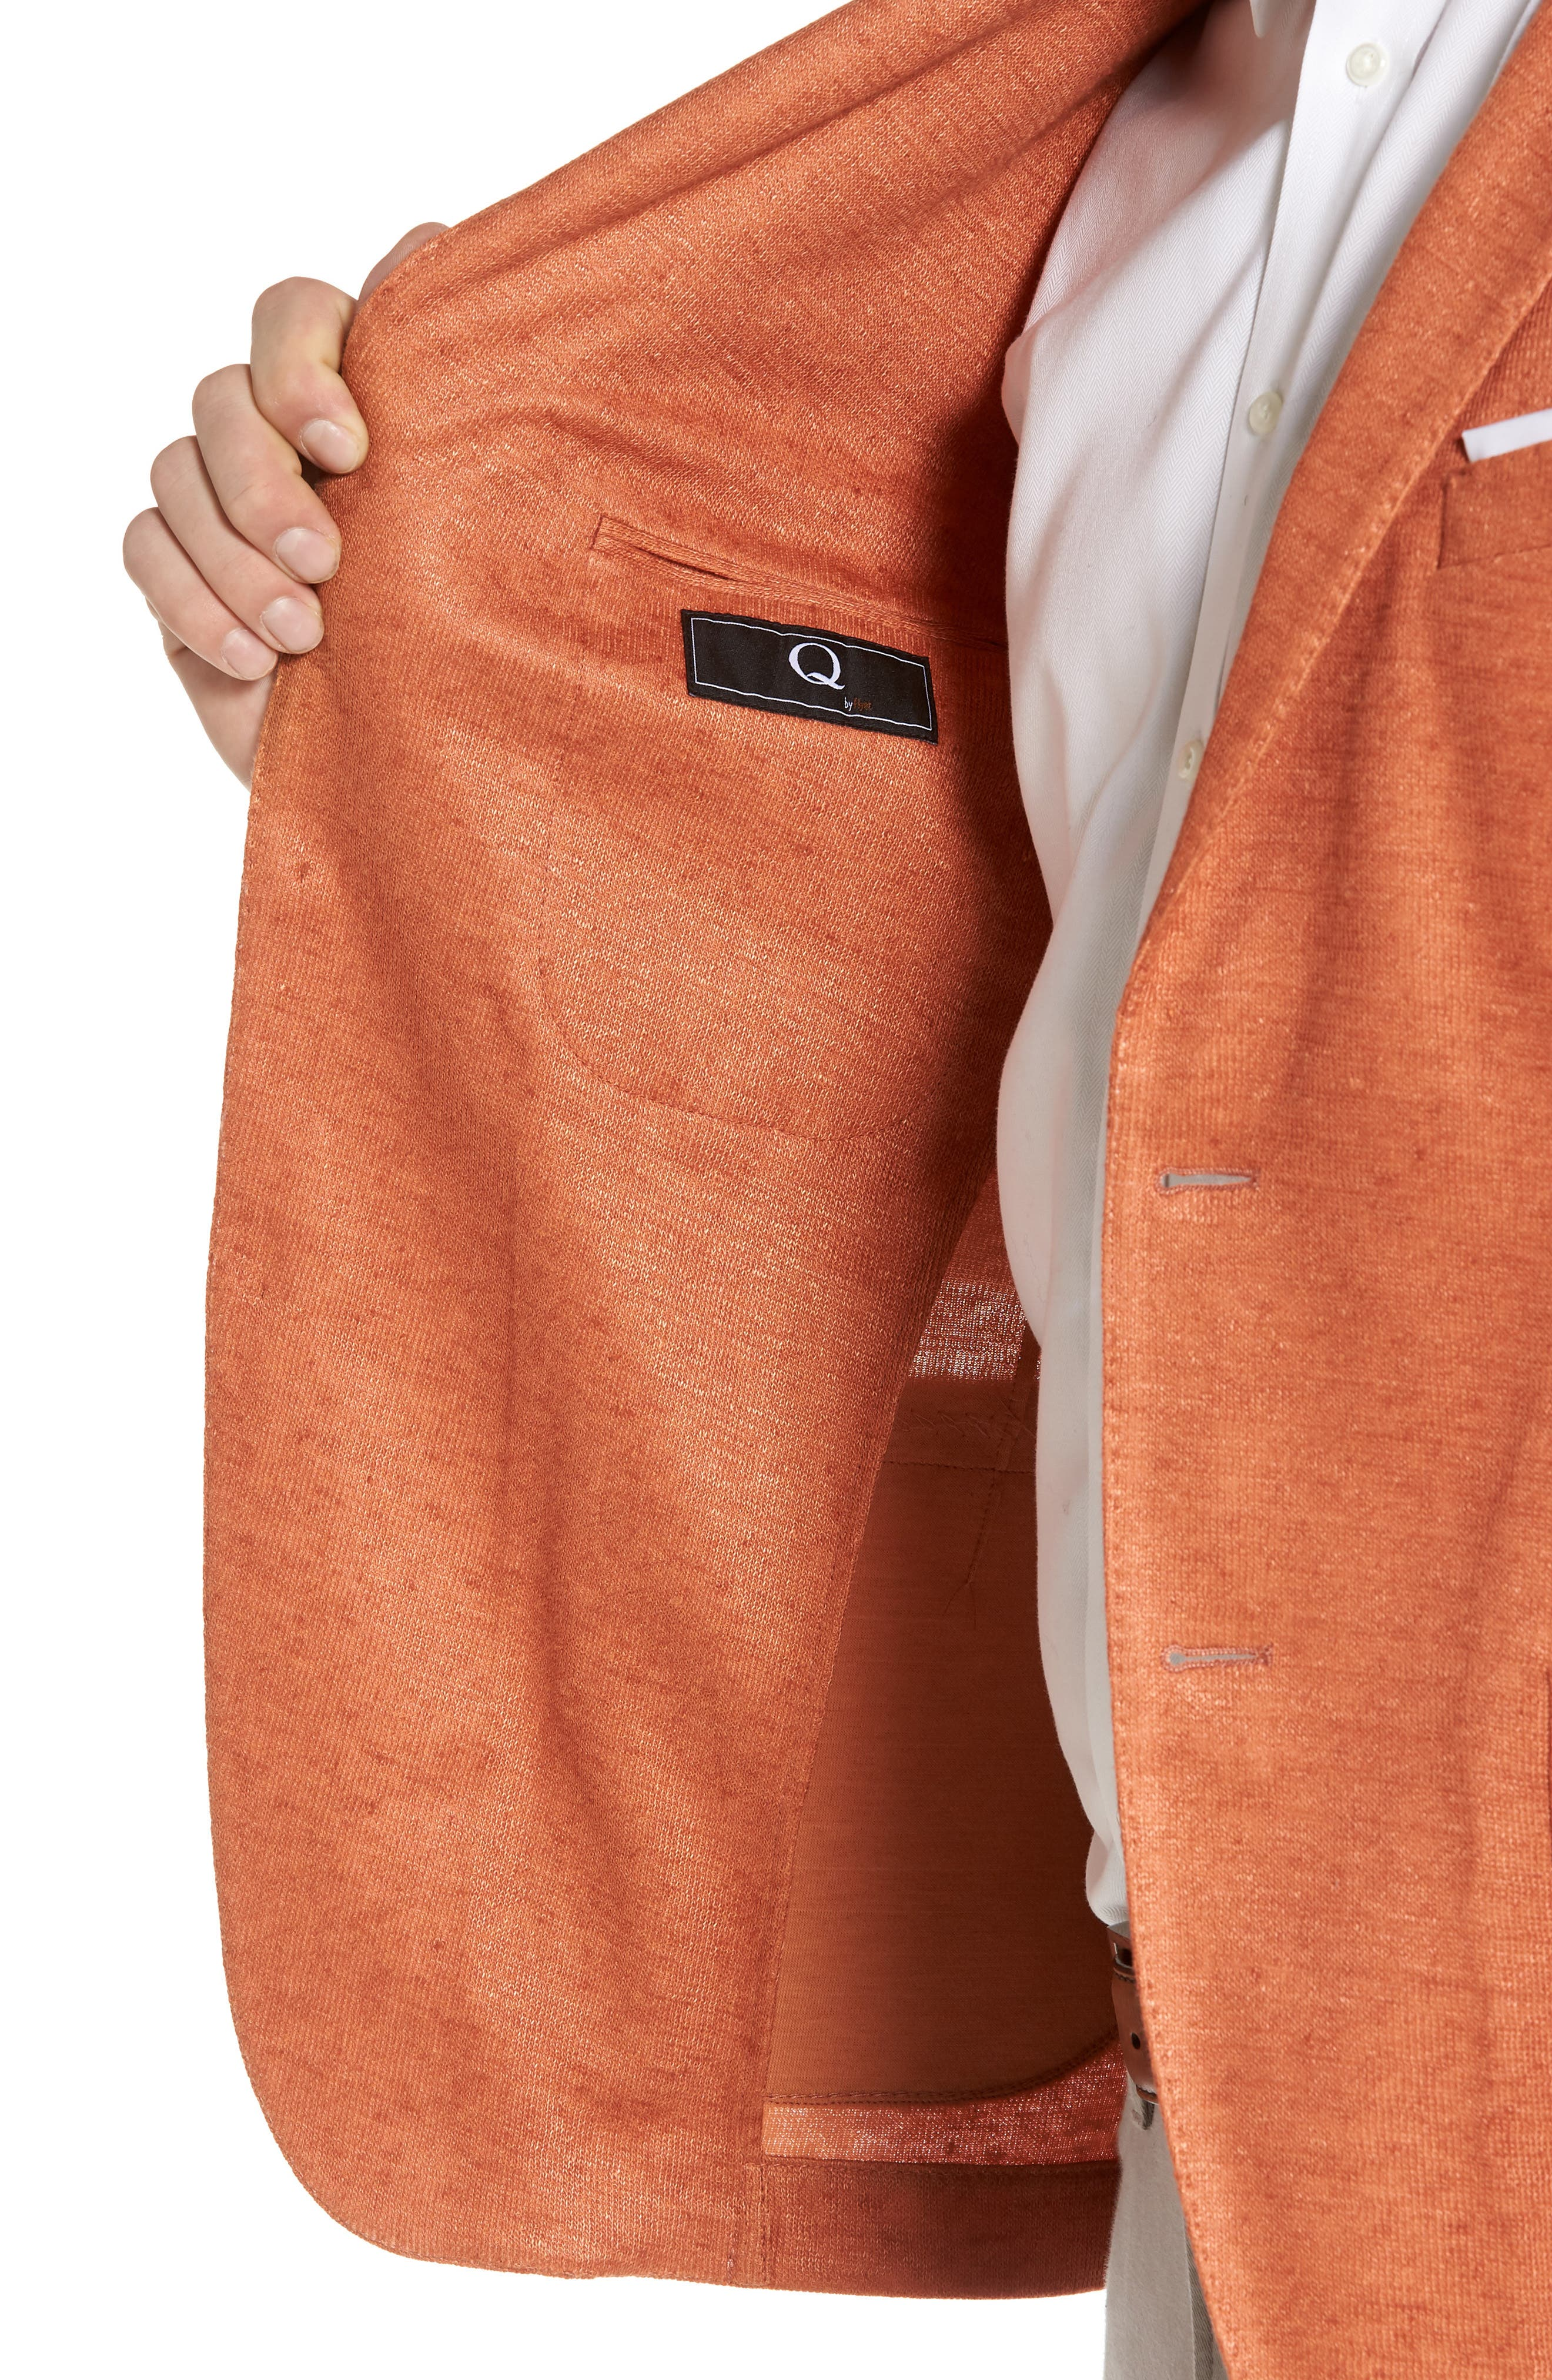 Trim Fit Heathered Jersey Blazer,                             Alternate thumbnail 4, color,                             Orange